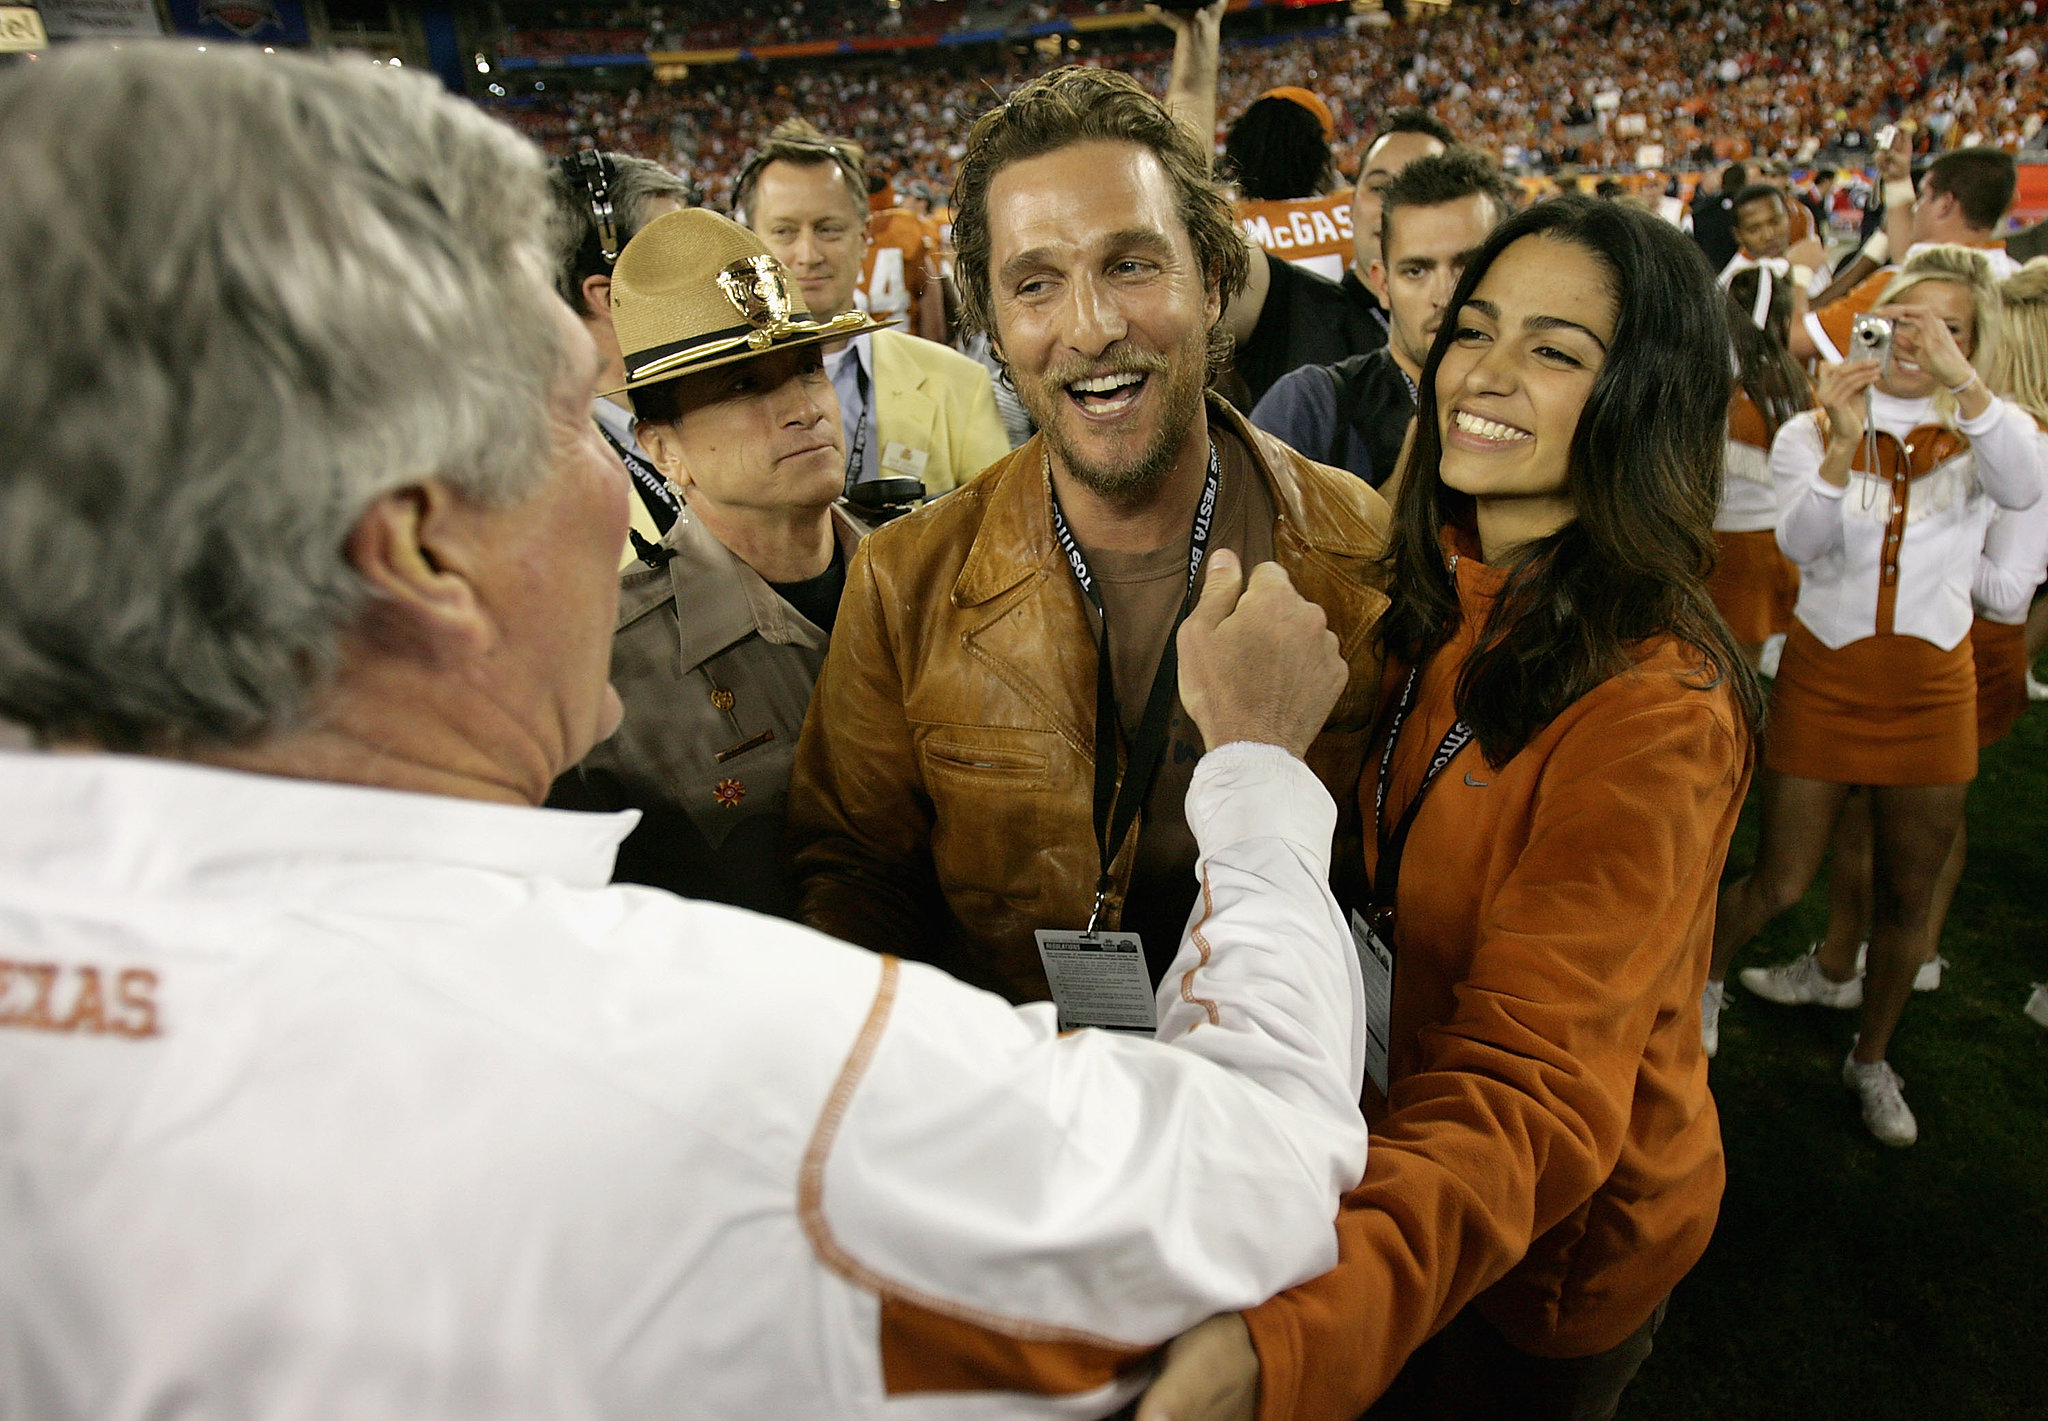 They watched a Texas Longhorn game in Arizona in January 2009.